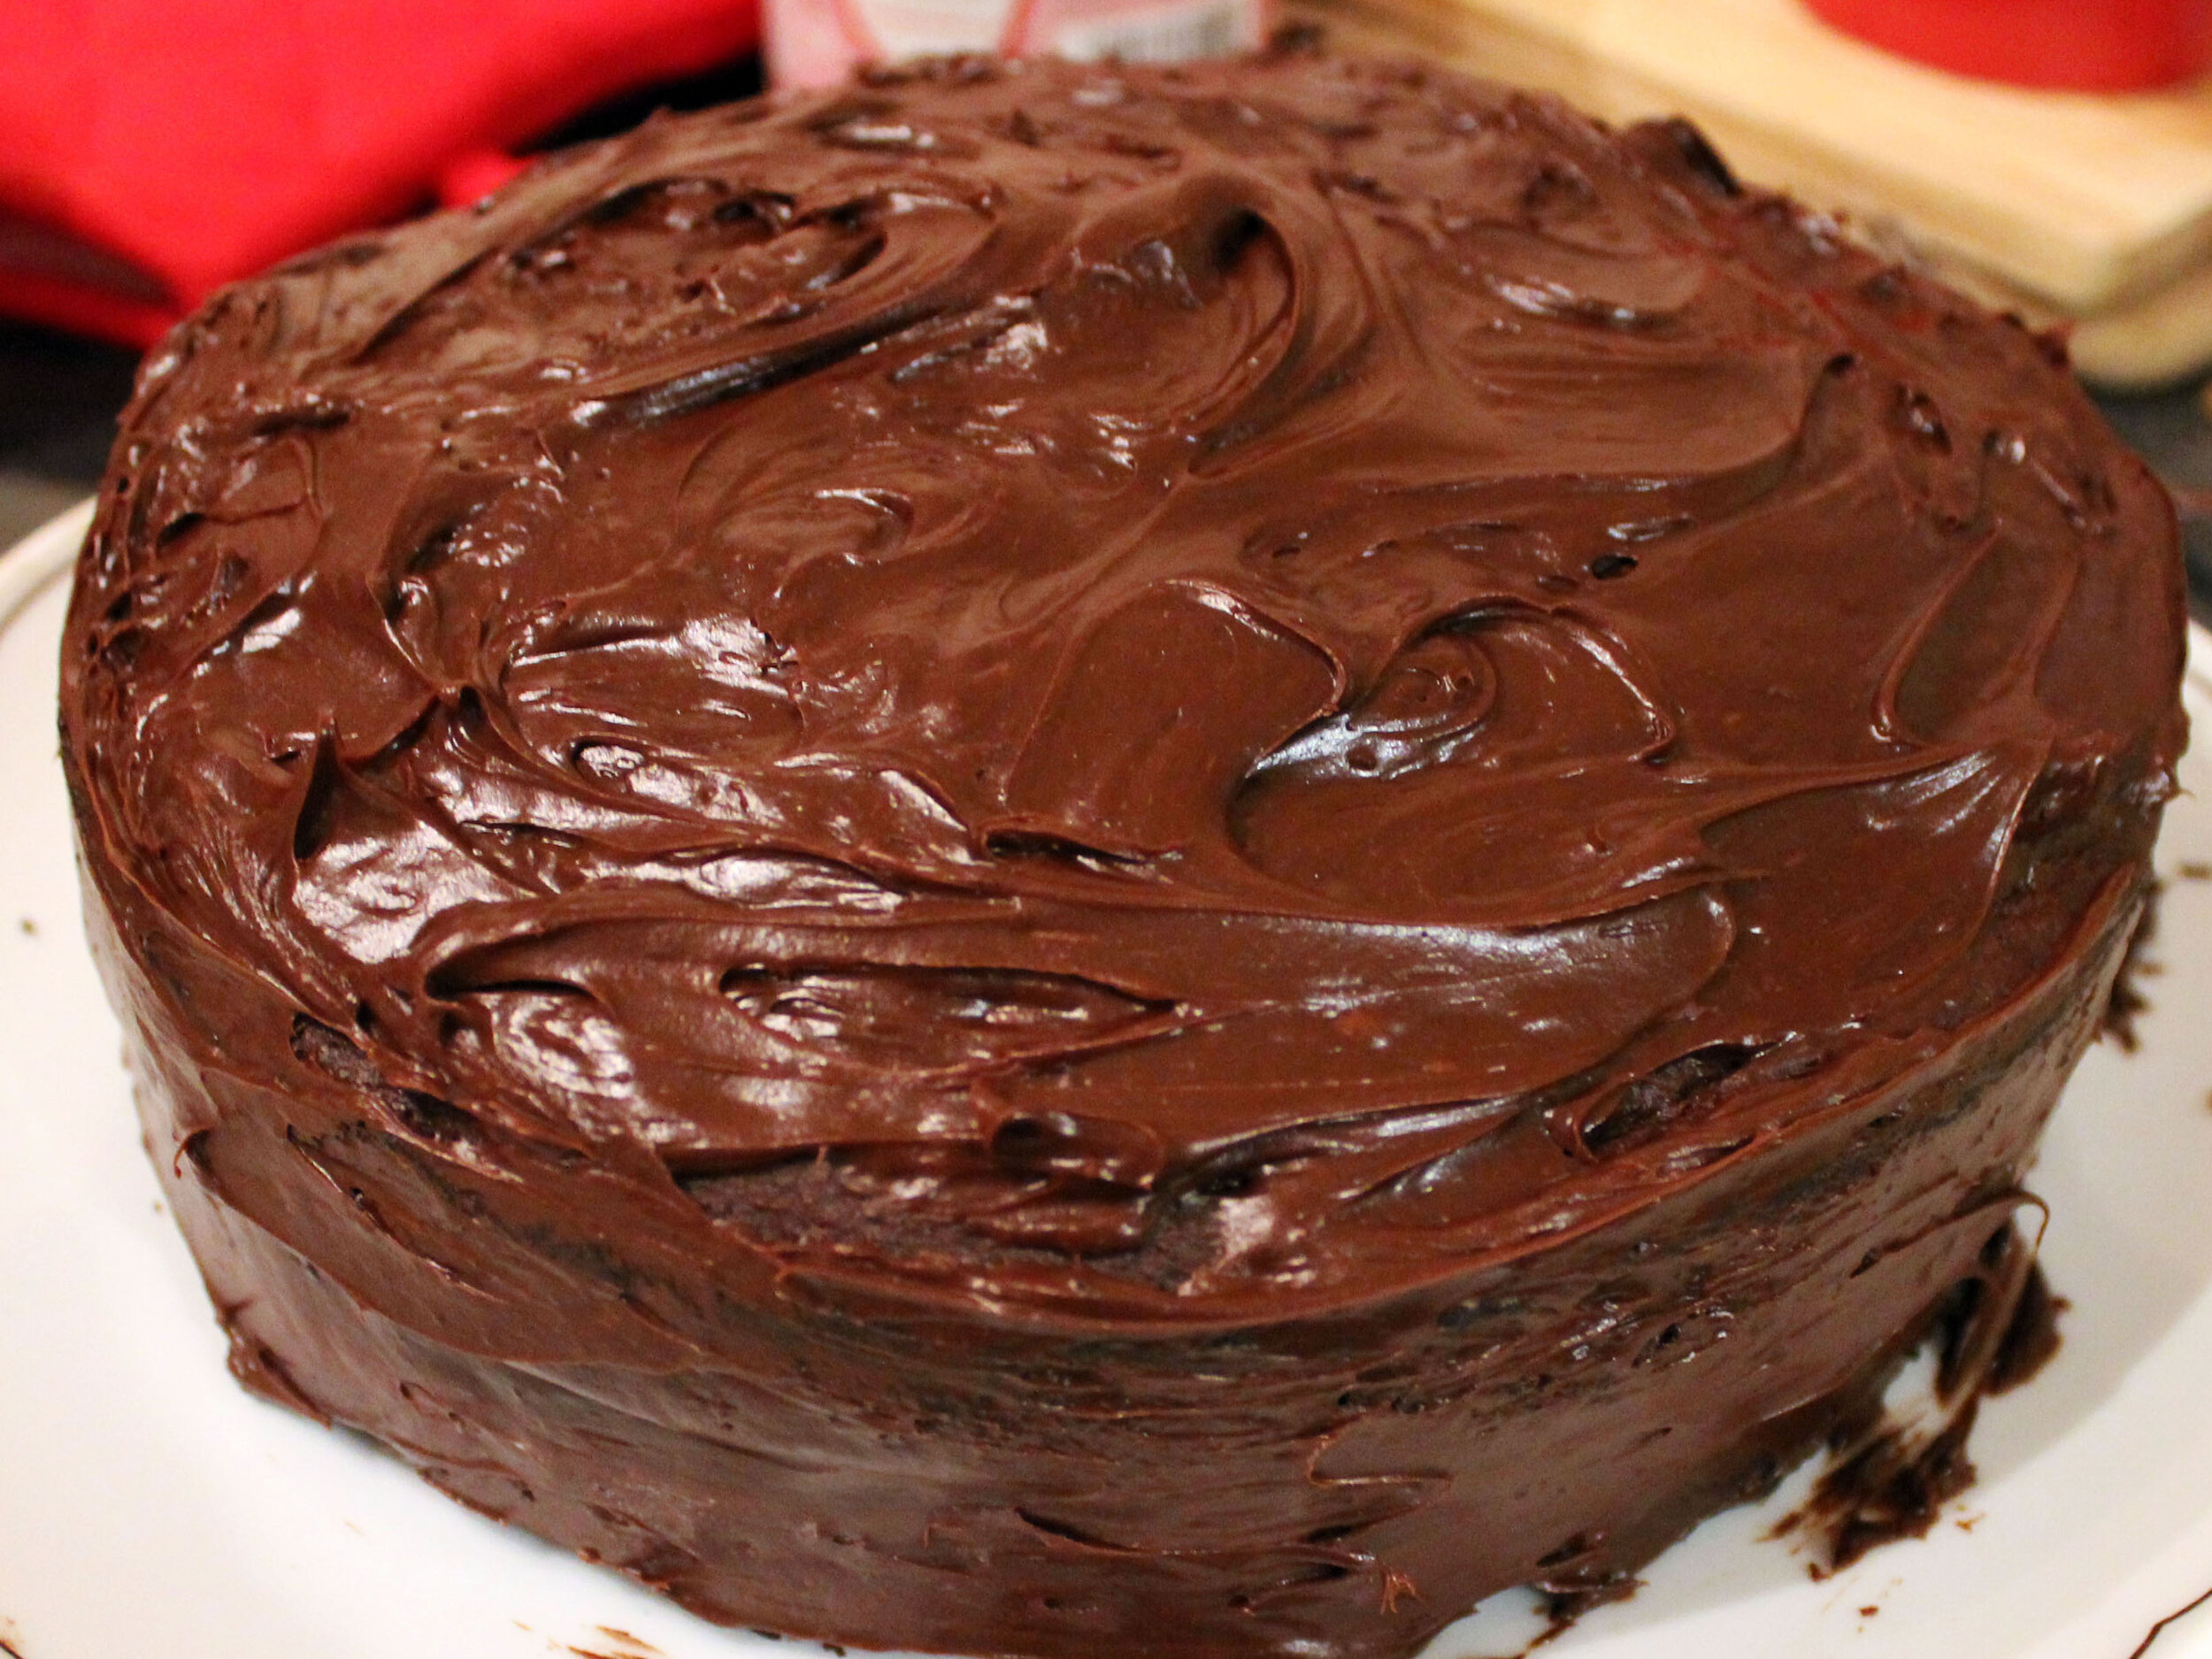 Make No Mistake: This Chocolate Mistake Cake Is Awesome